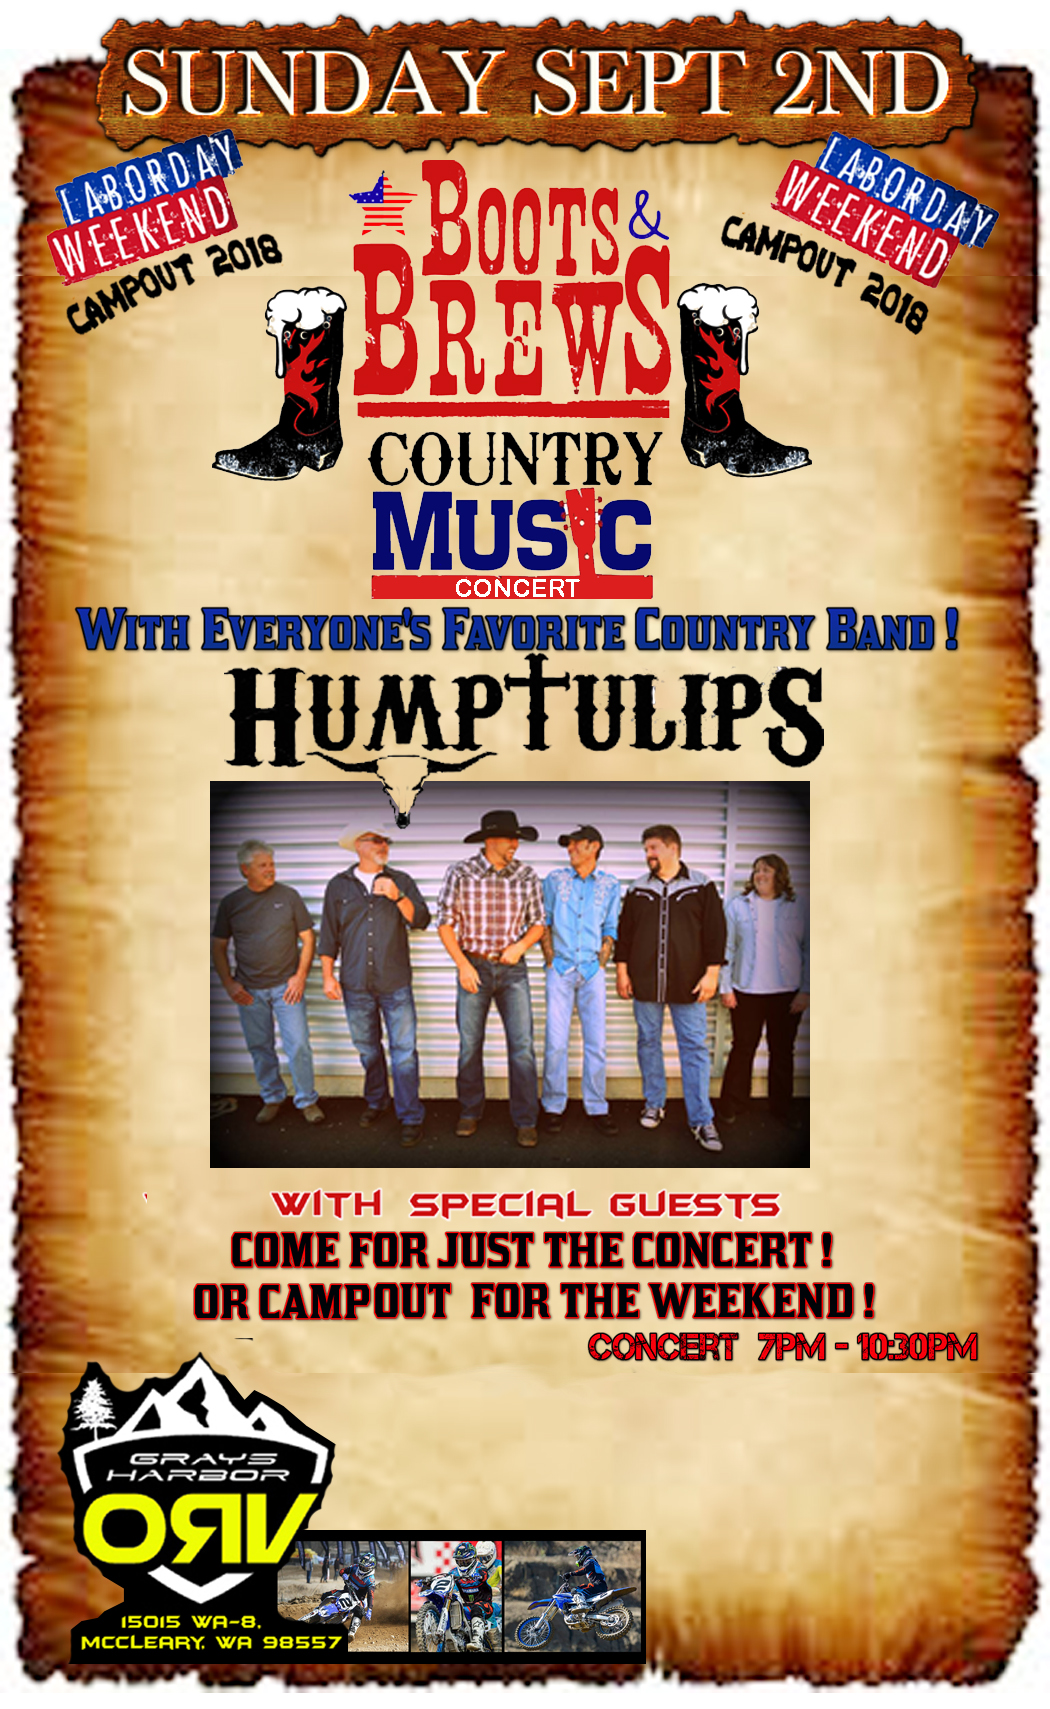 Boots and Brews Country Music Concert Tickets 09/02/18